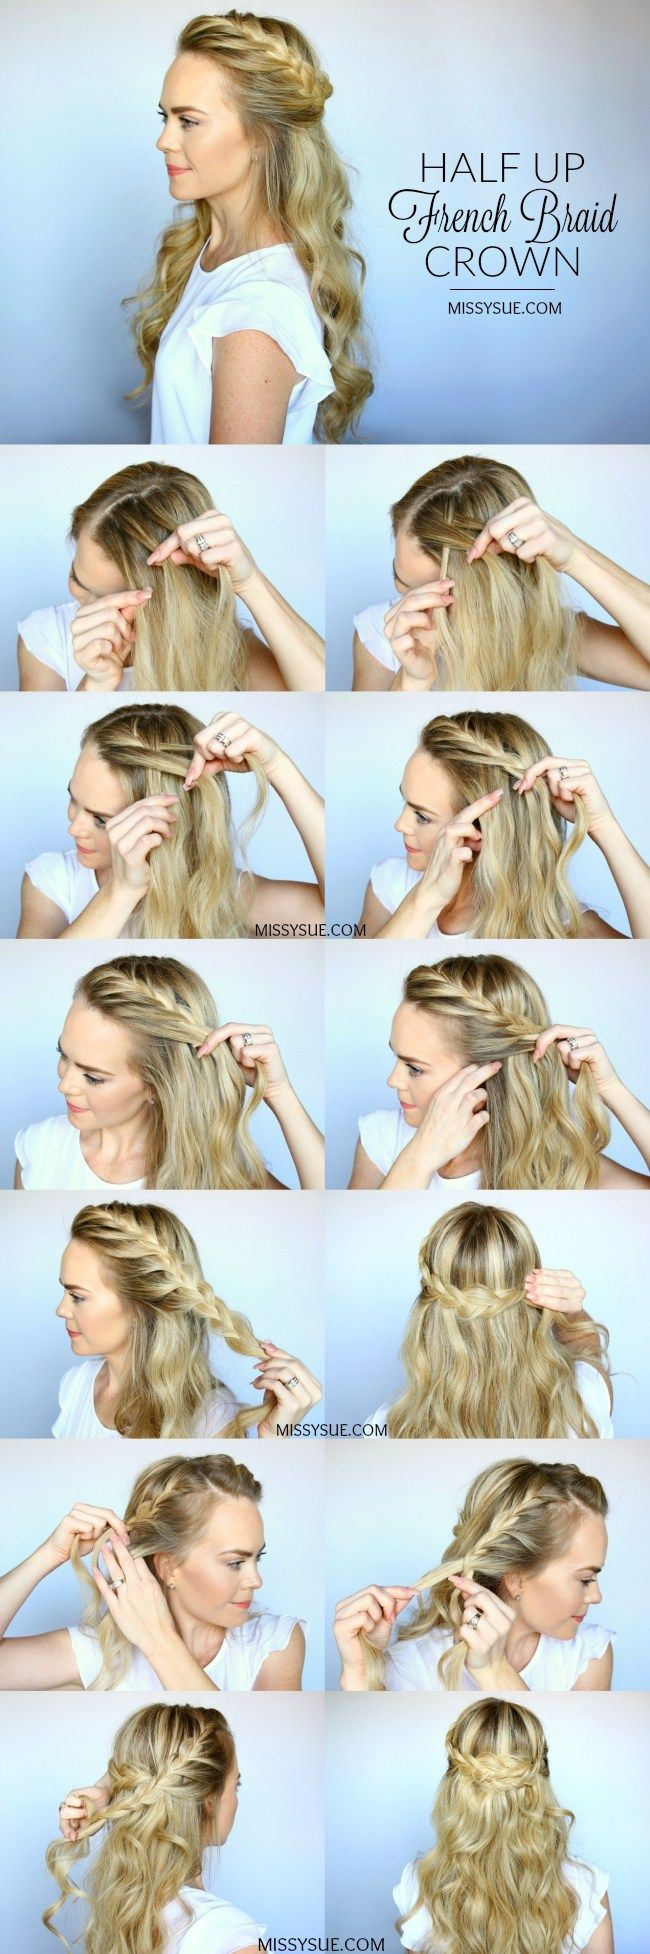 Half Up French Braid Crown | Prom hairstyles for long hair ...